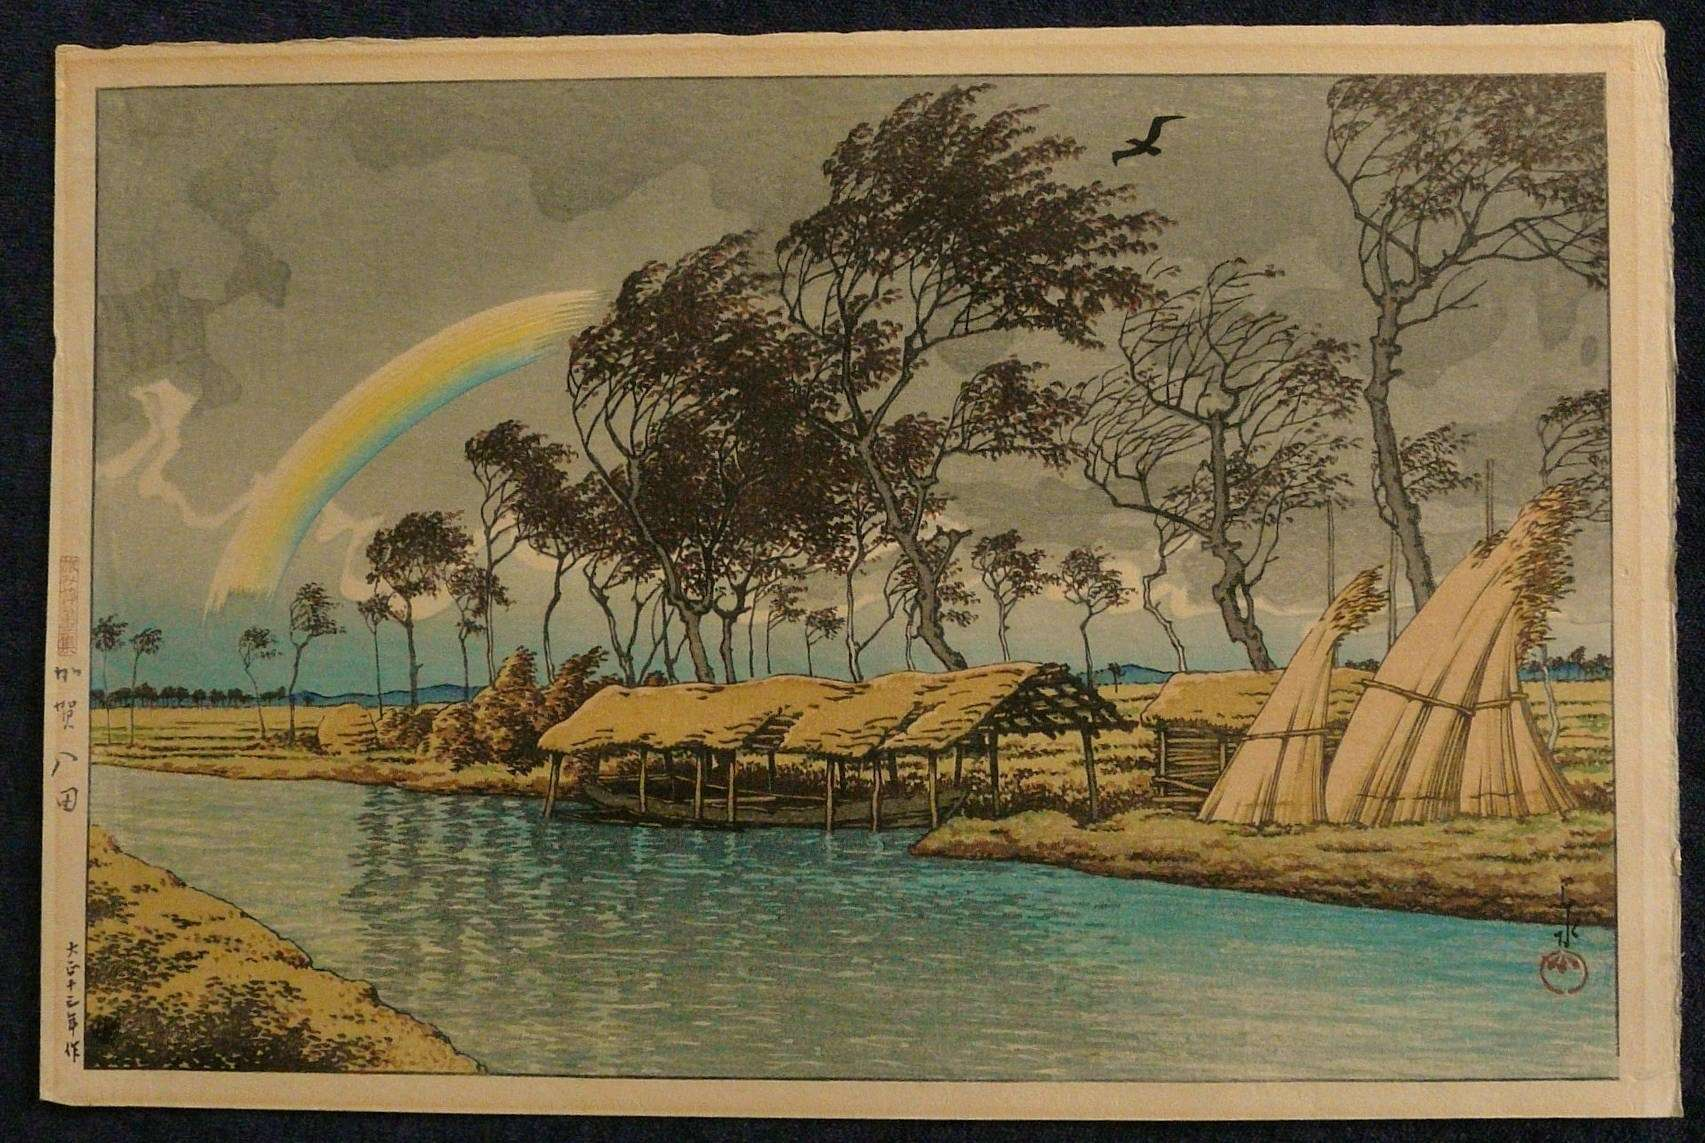 KAWASE HASUI: #P3897 AUTUMN RAINBOW AT HATTA, KAGA